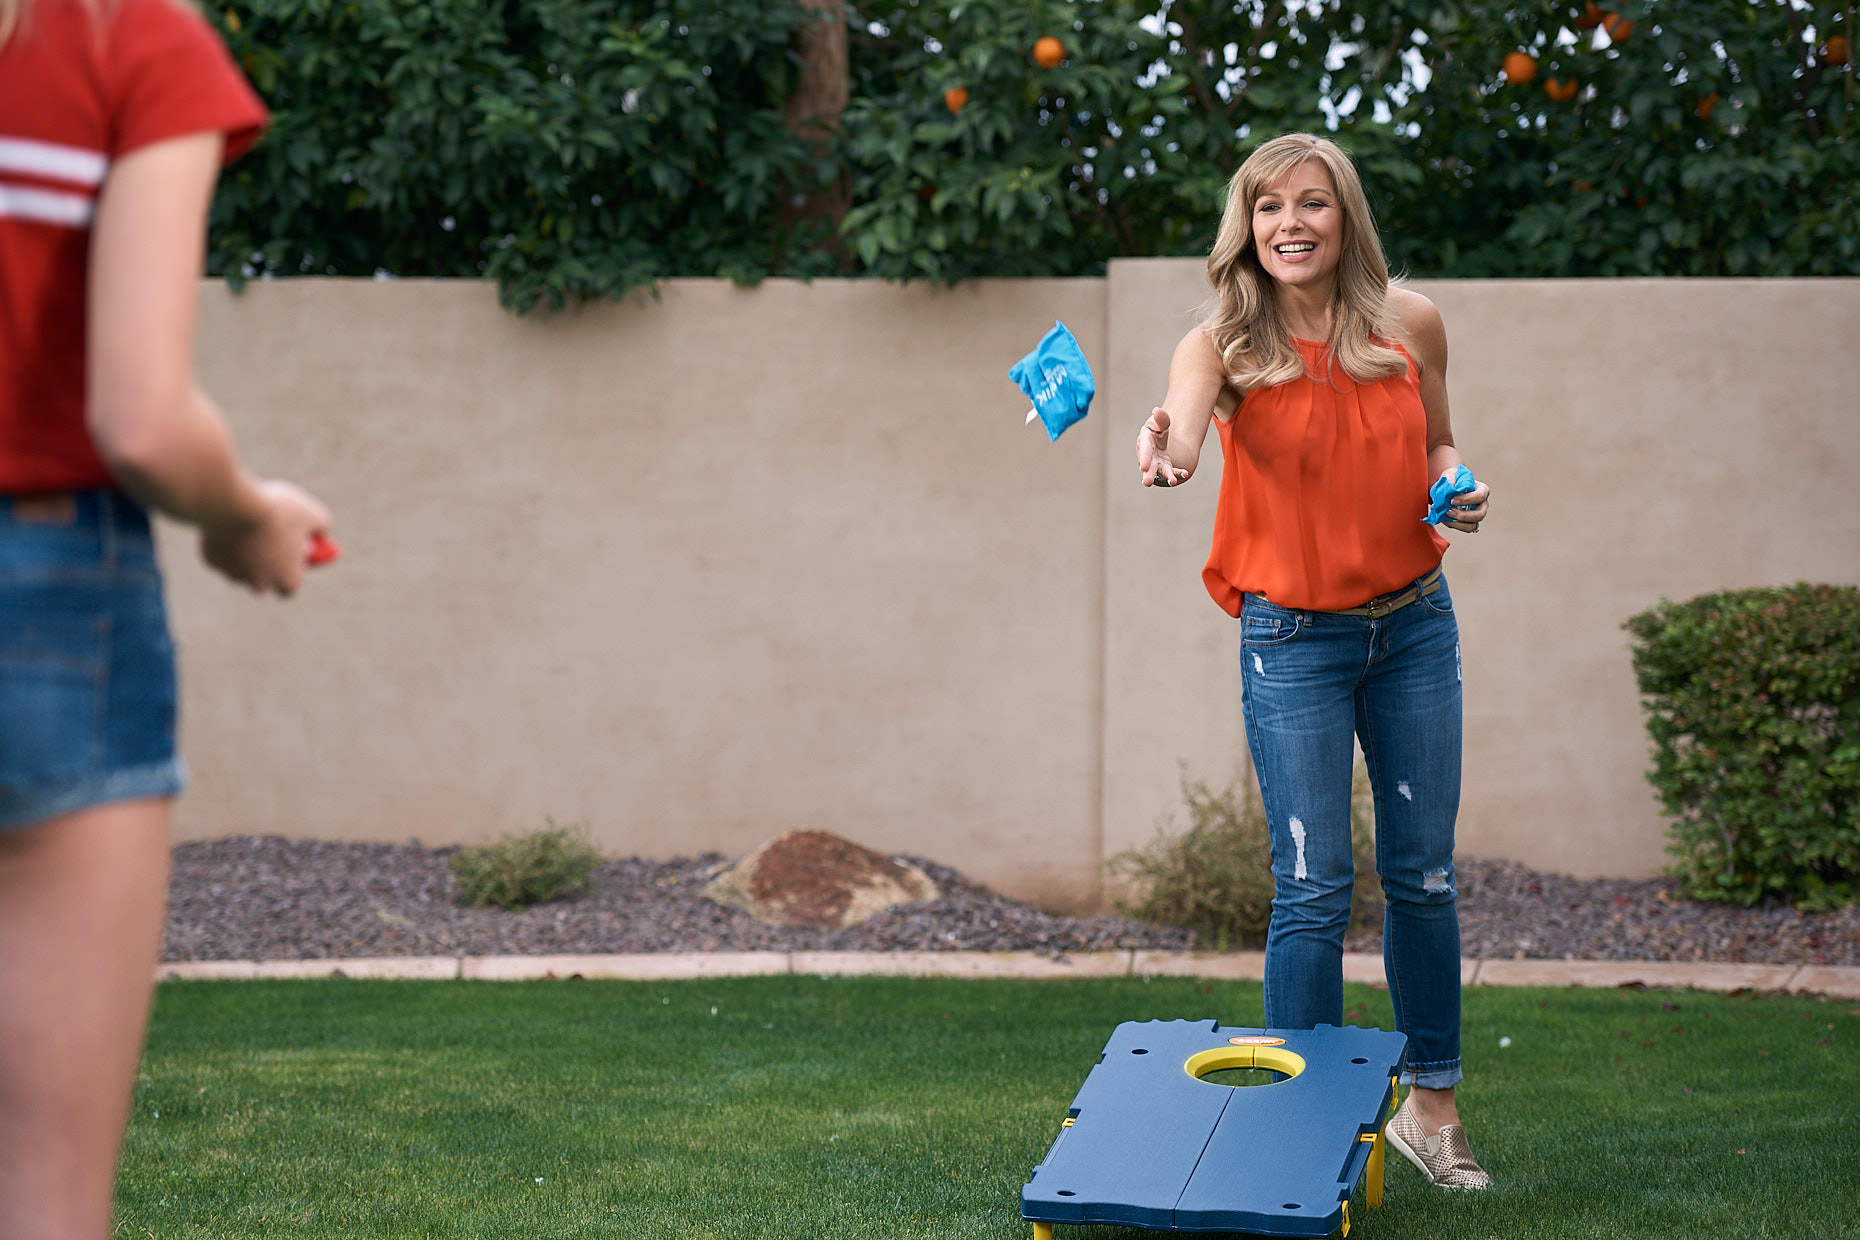 Jason Tracy - Advertising Photographer Kansas City - Mother Daughter Beanbag Toss